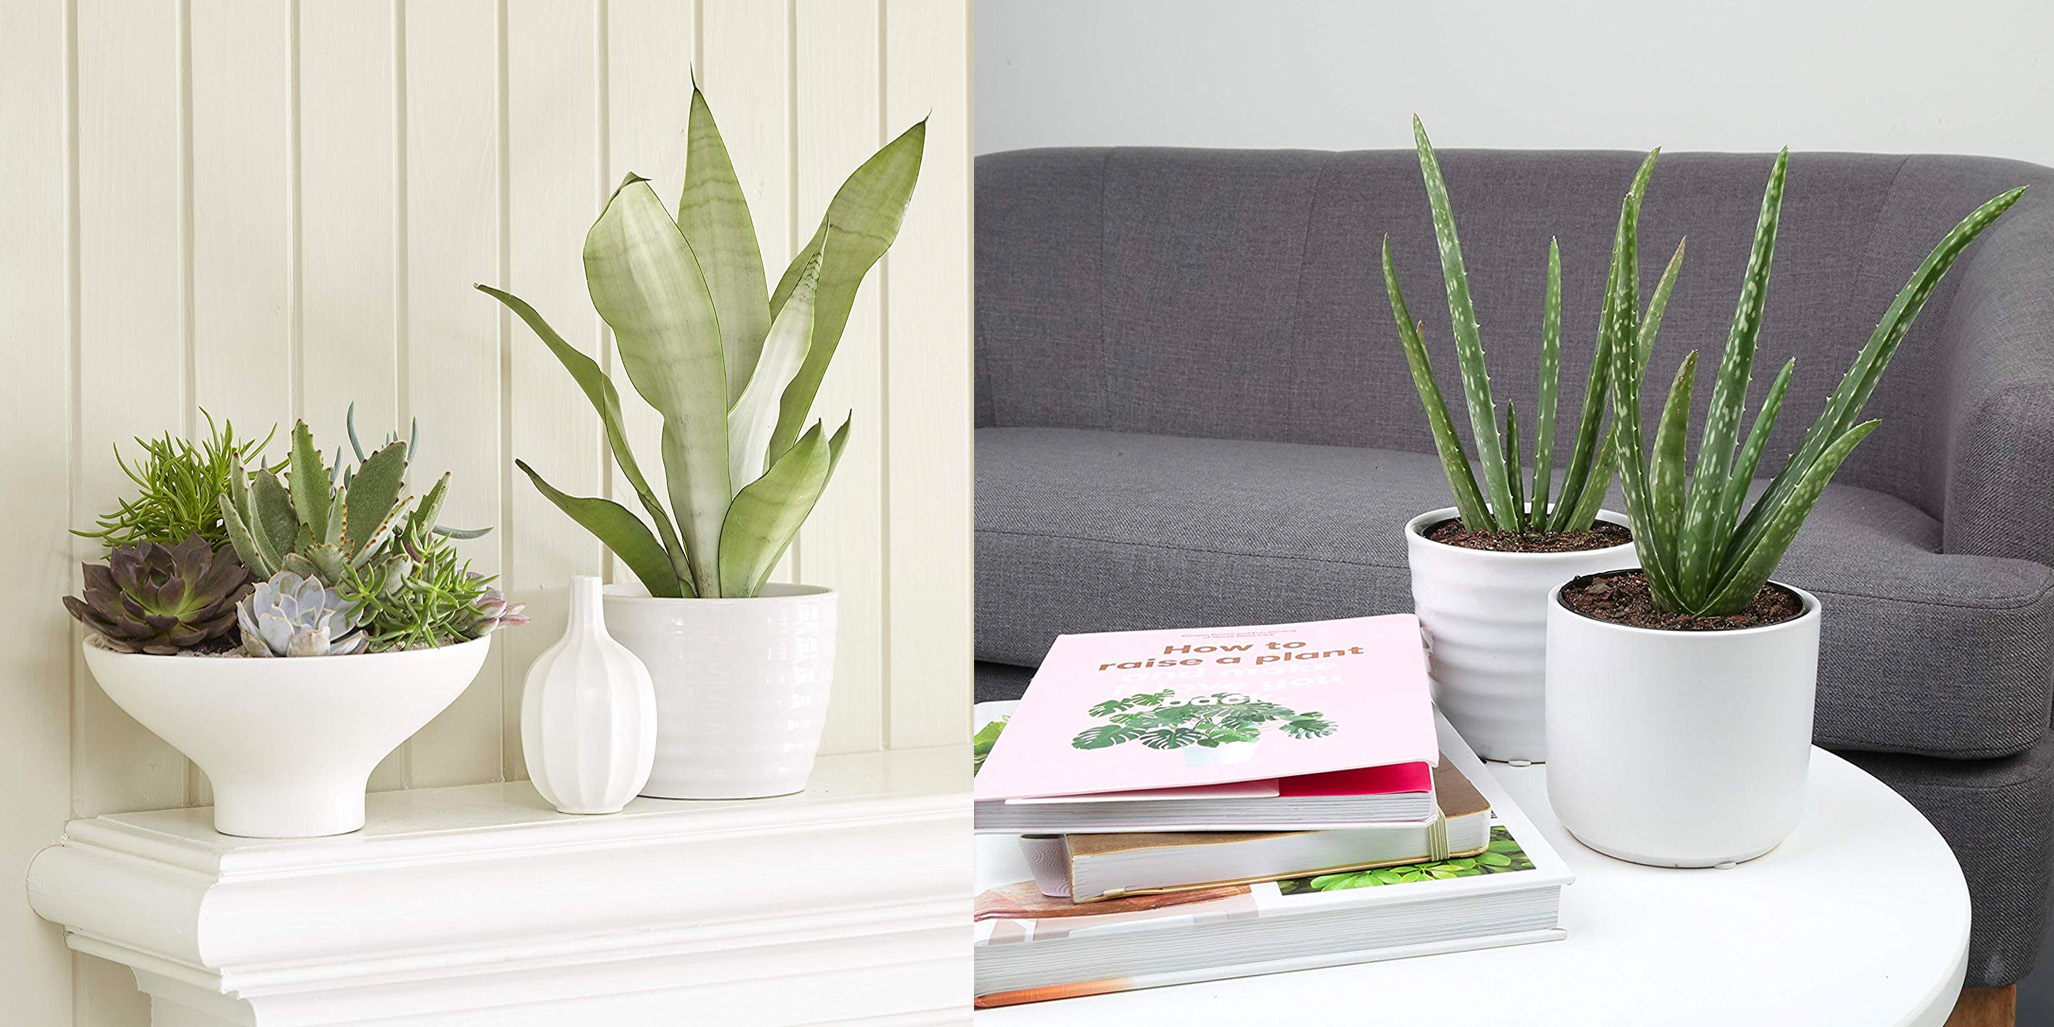 Amazons Gold Box Offers Deals On Indoor Plants To Freshen